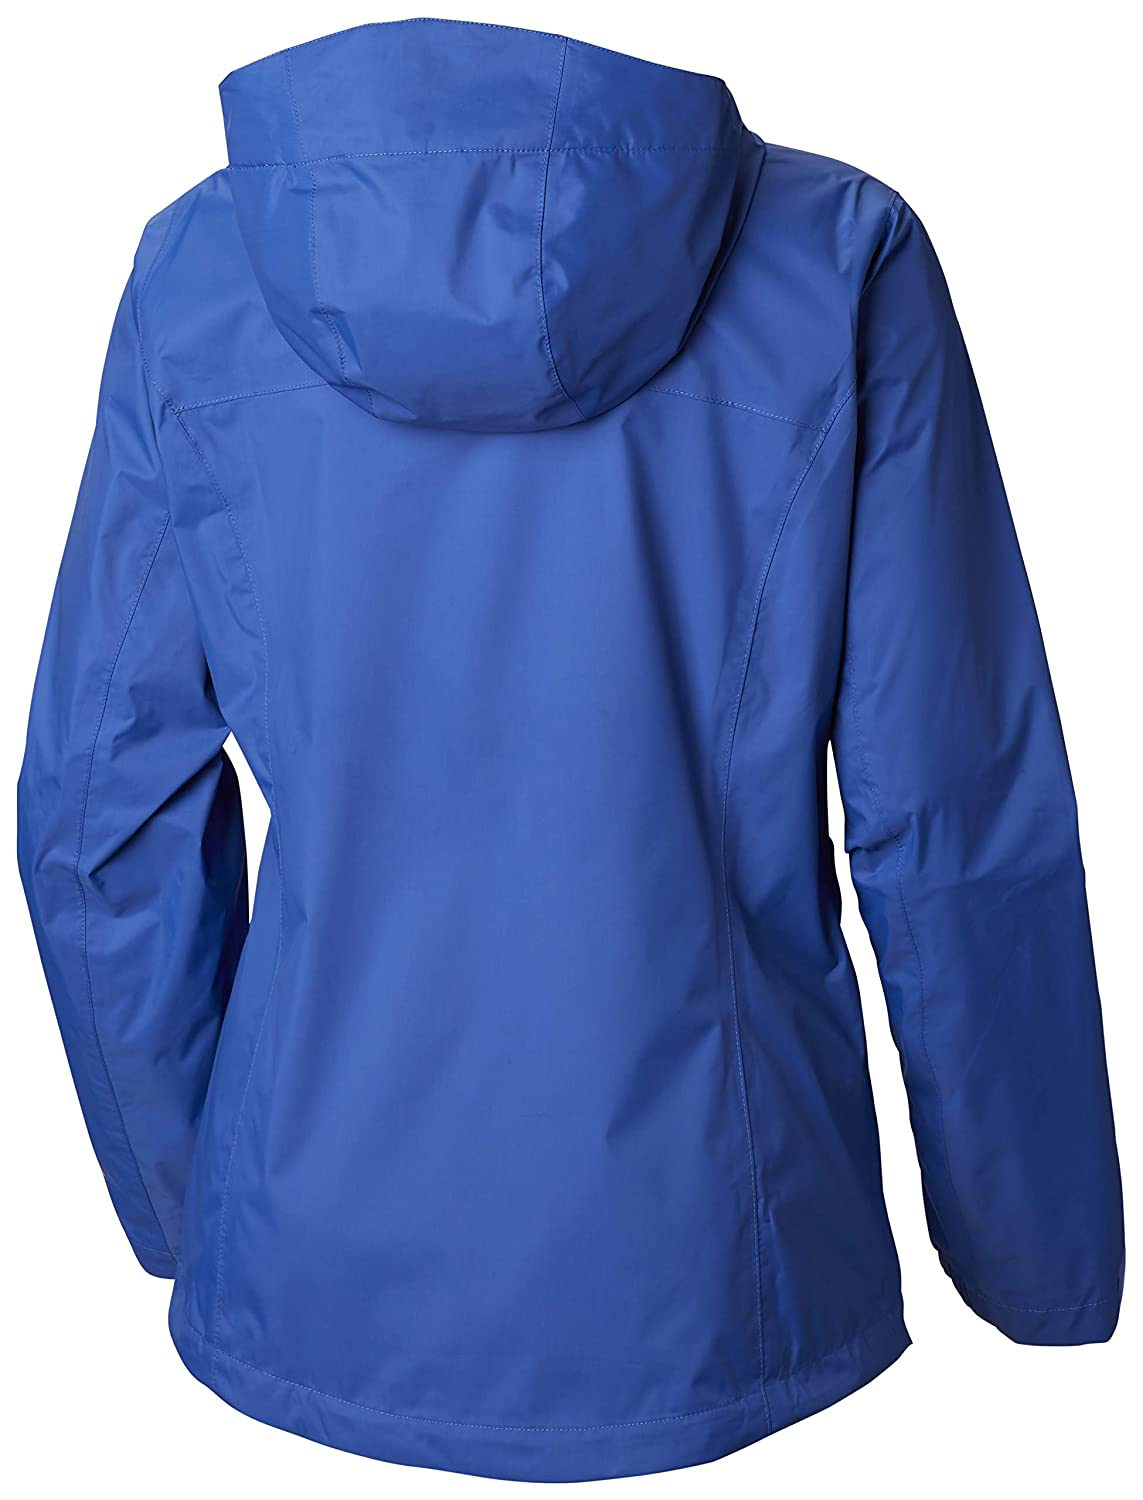 Columbia Womens EvaPOURation Jacket Waterproof /& Breathable